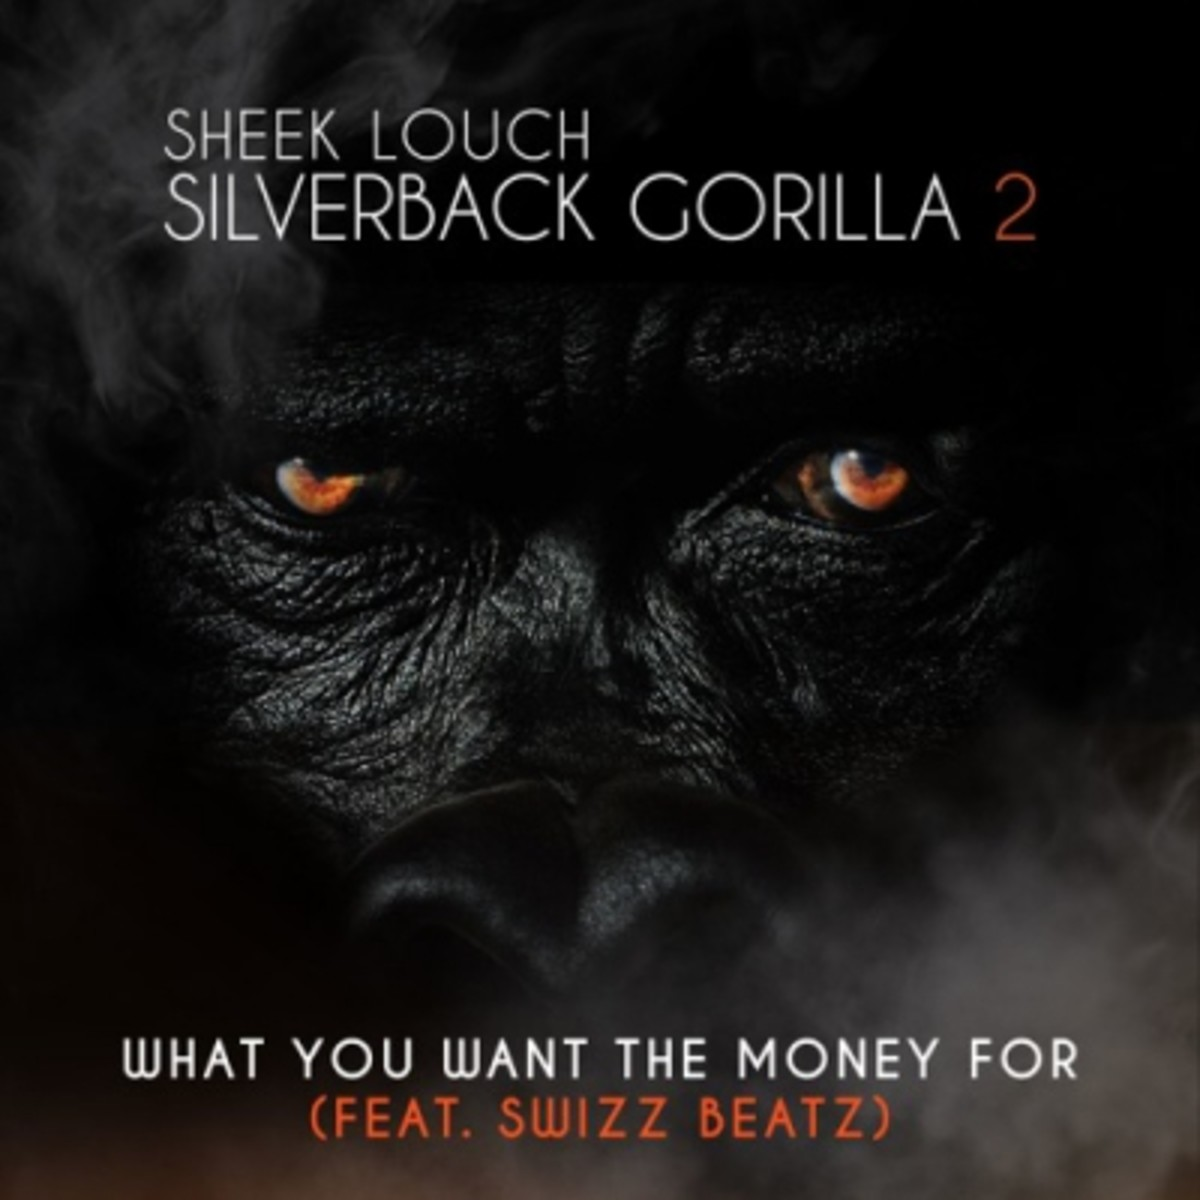 sheek-louch-what-you-want-the-money-for.jpg